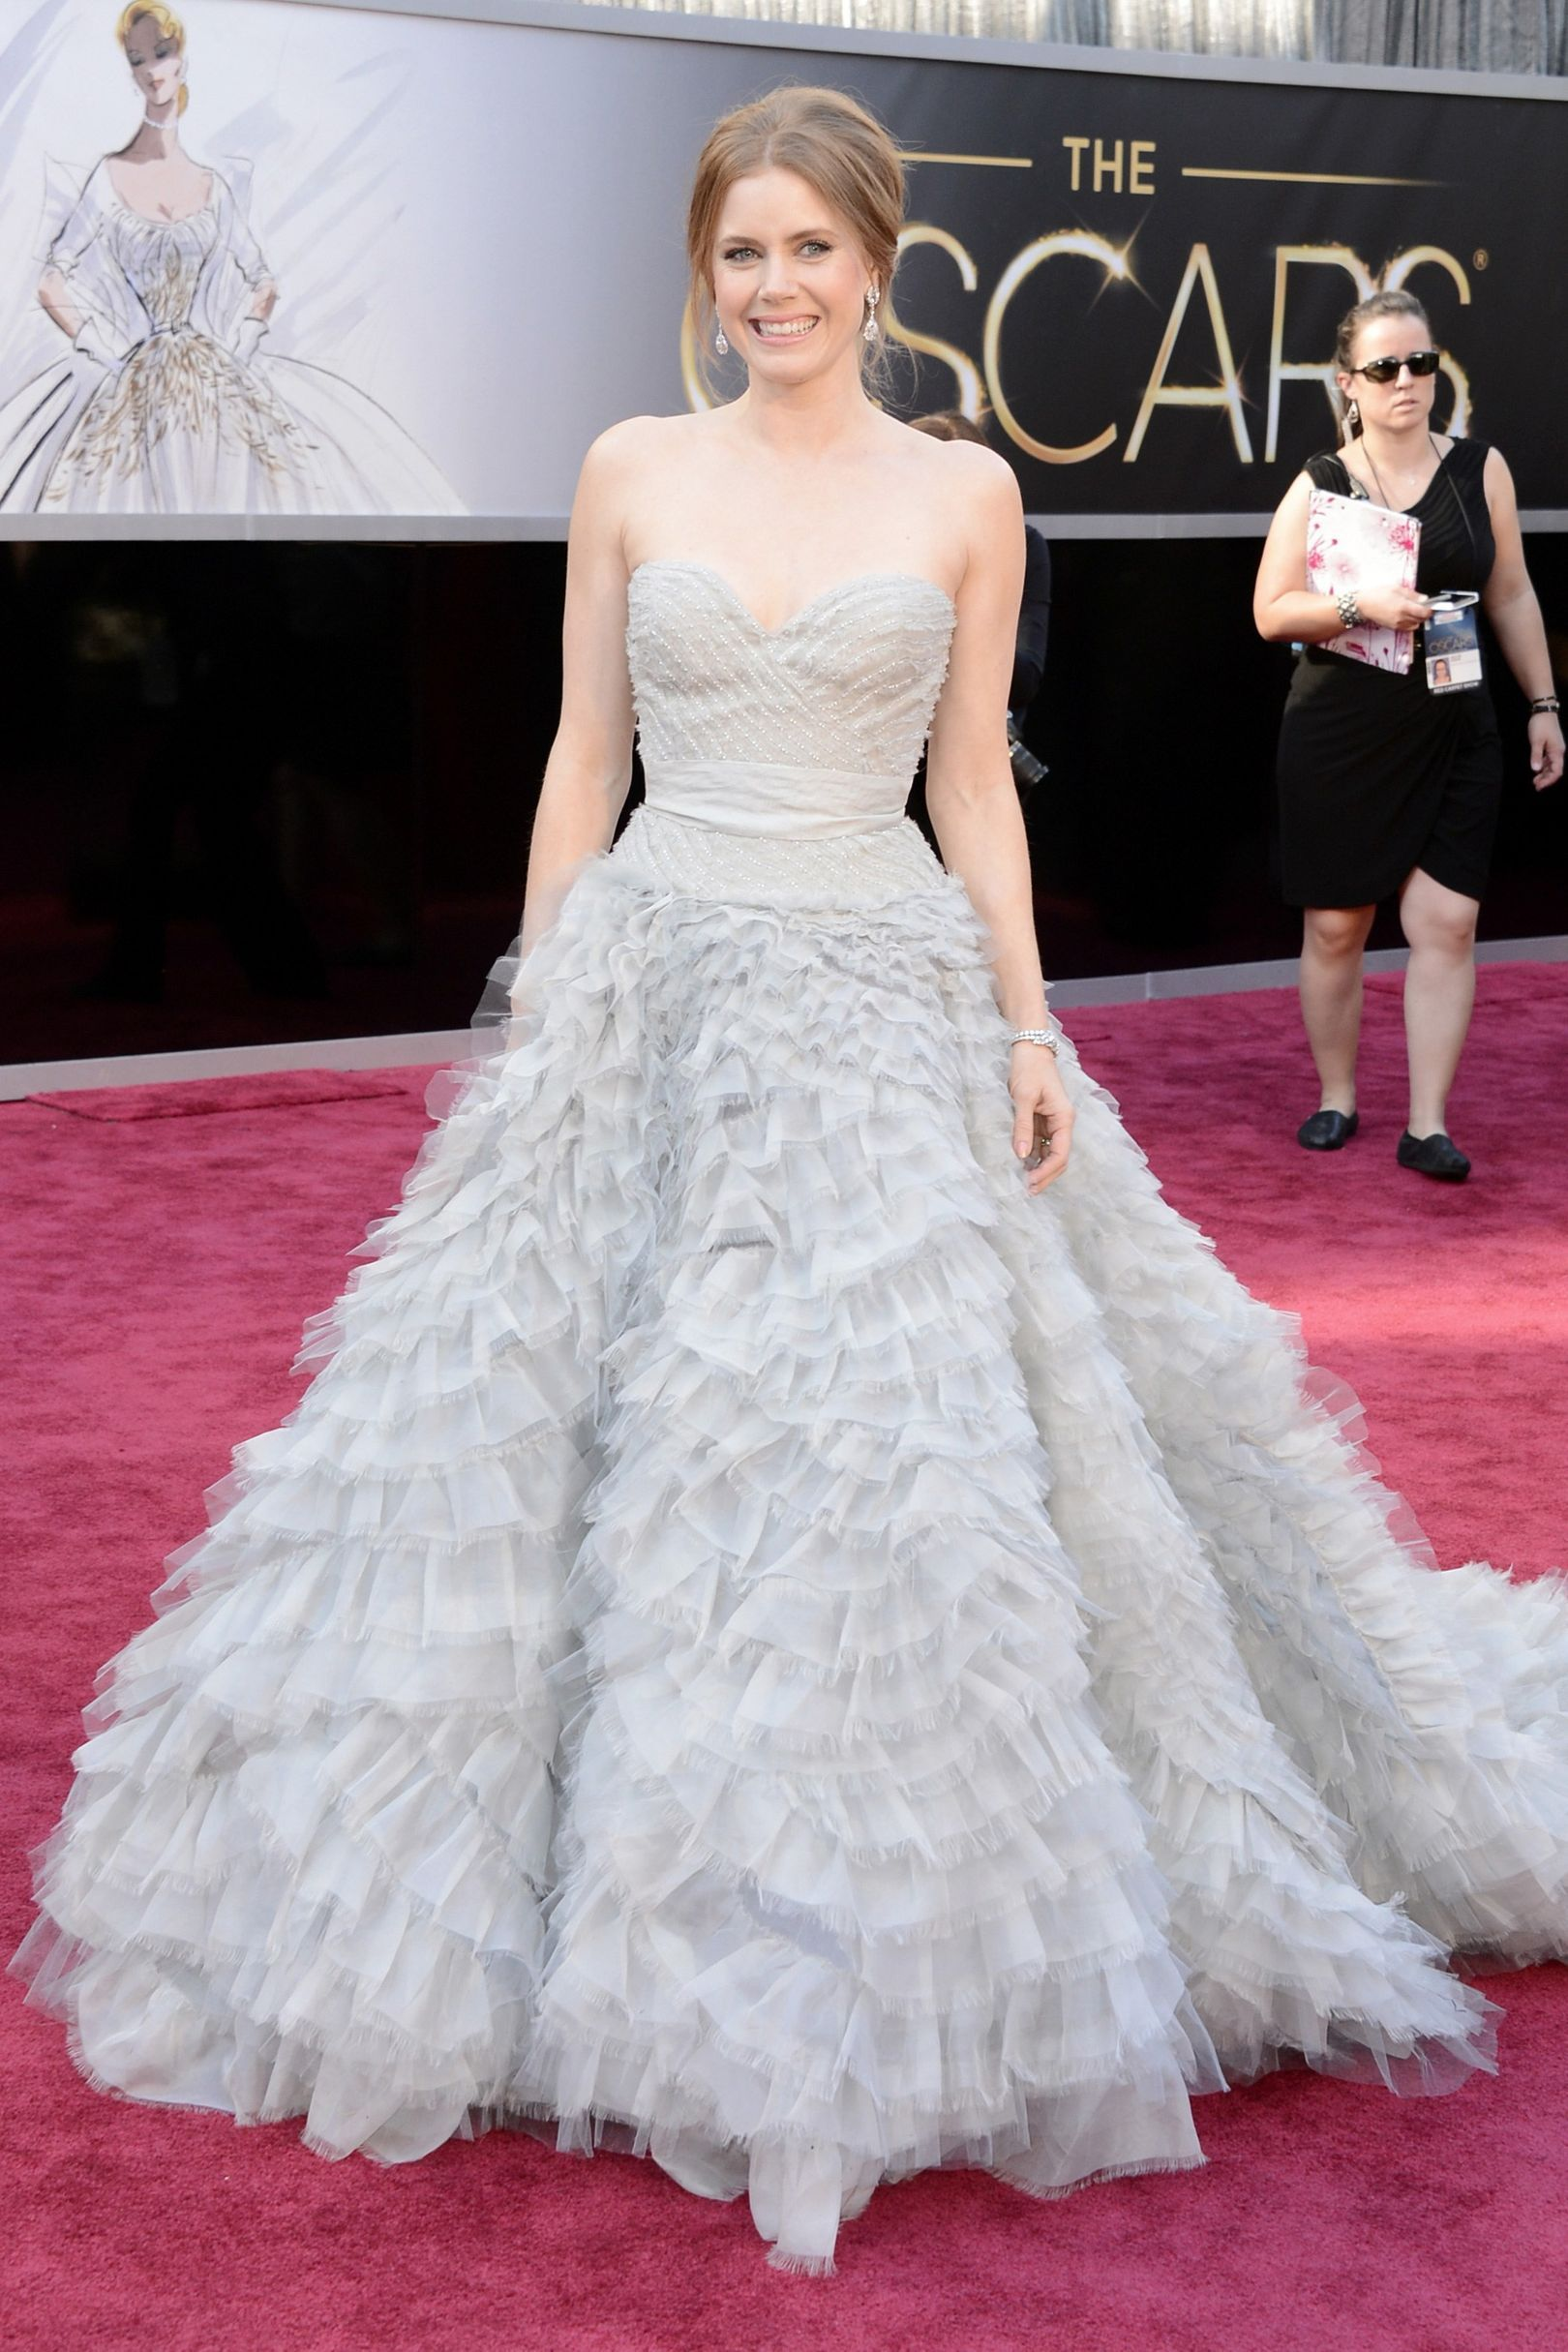 e0f17fba6517e Best Supporting Actress nominee Amy Adams in an Oscar De La Renta strapless  lavender gown with full ruffled skirt.